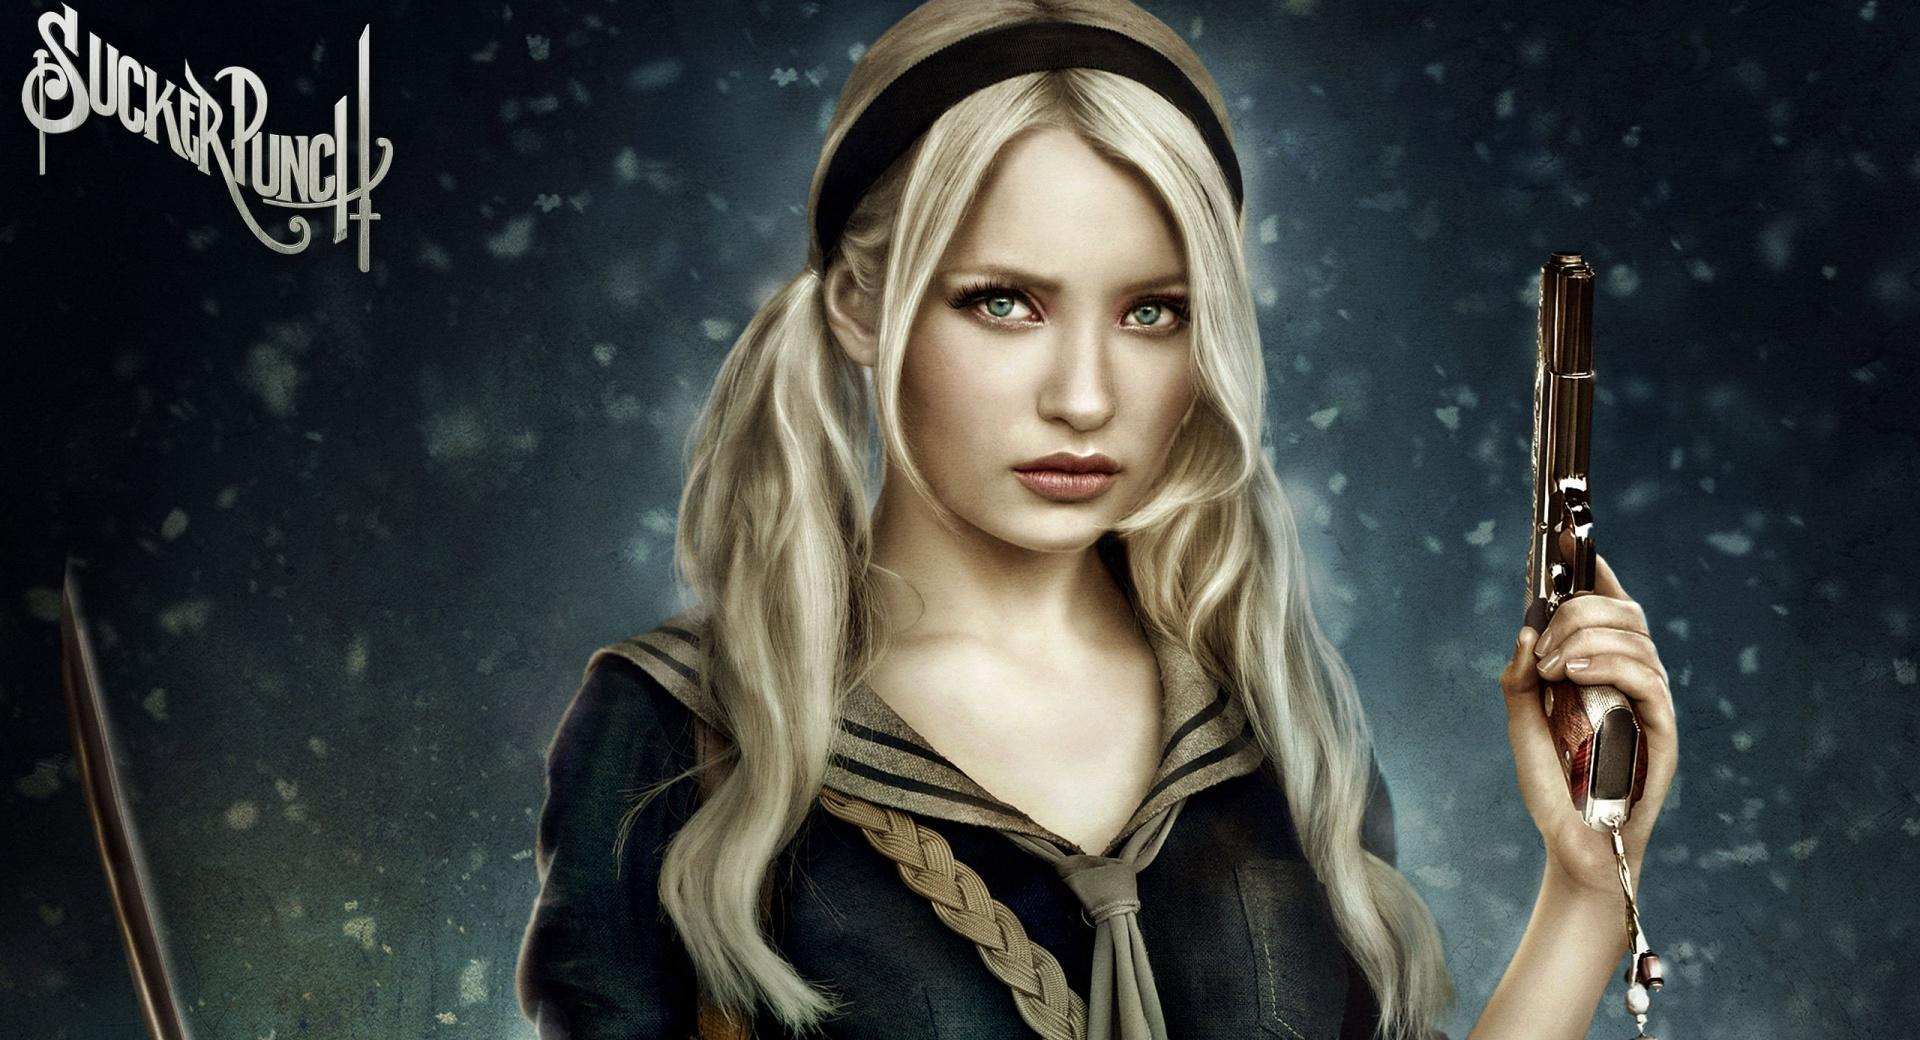 Emily Browning Sucker Punch wallpapers HD quality